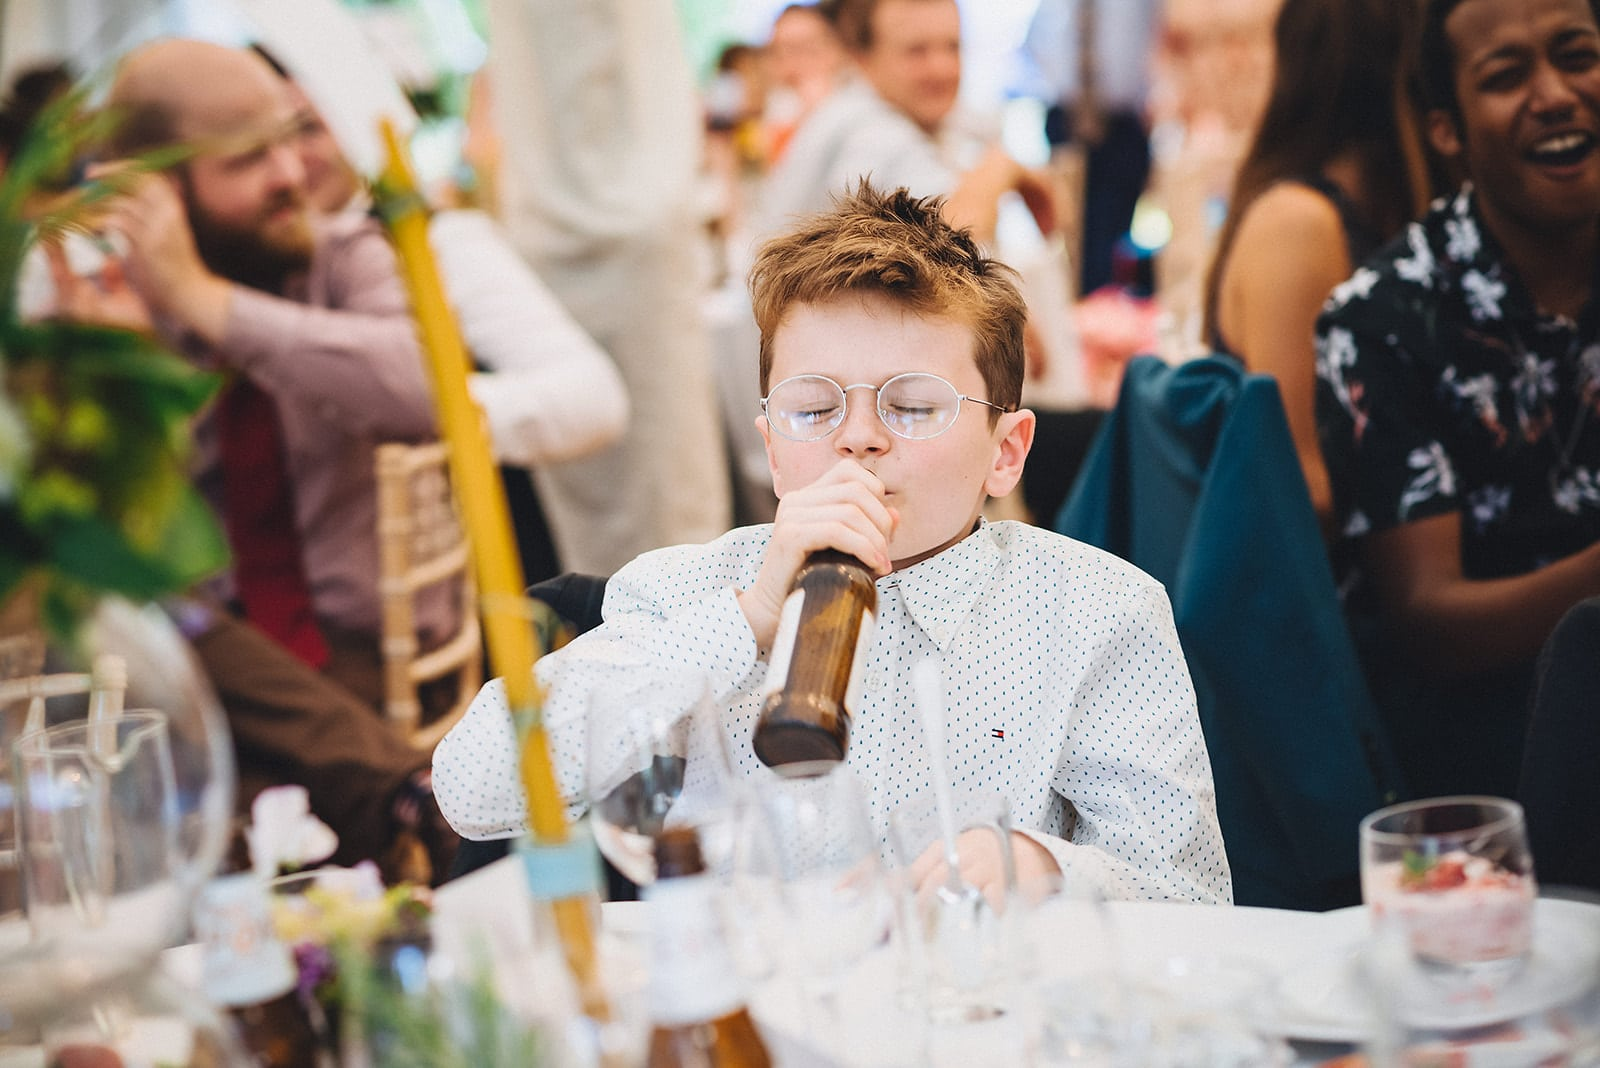 Little boy wedding guest drinking from a beer bottle during the wedding speeches